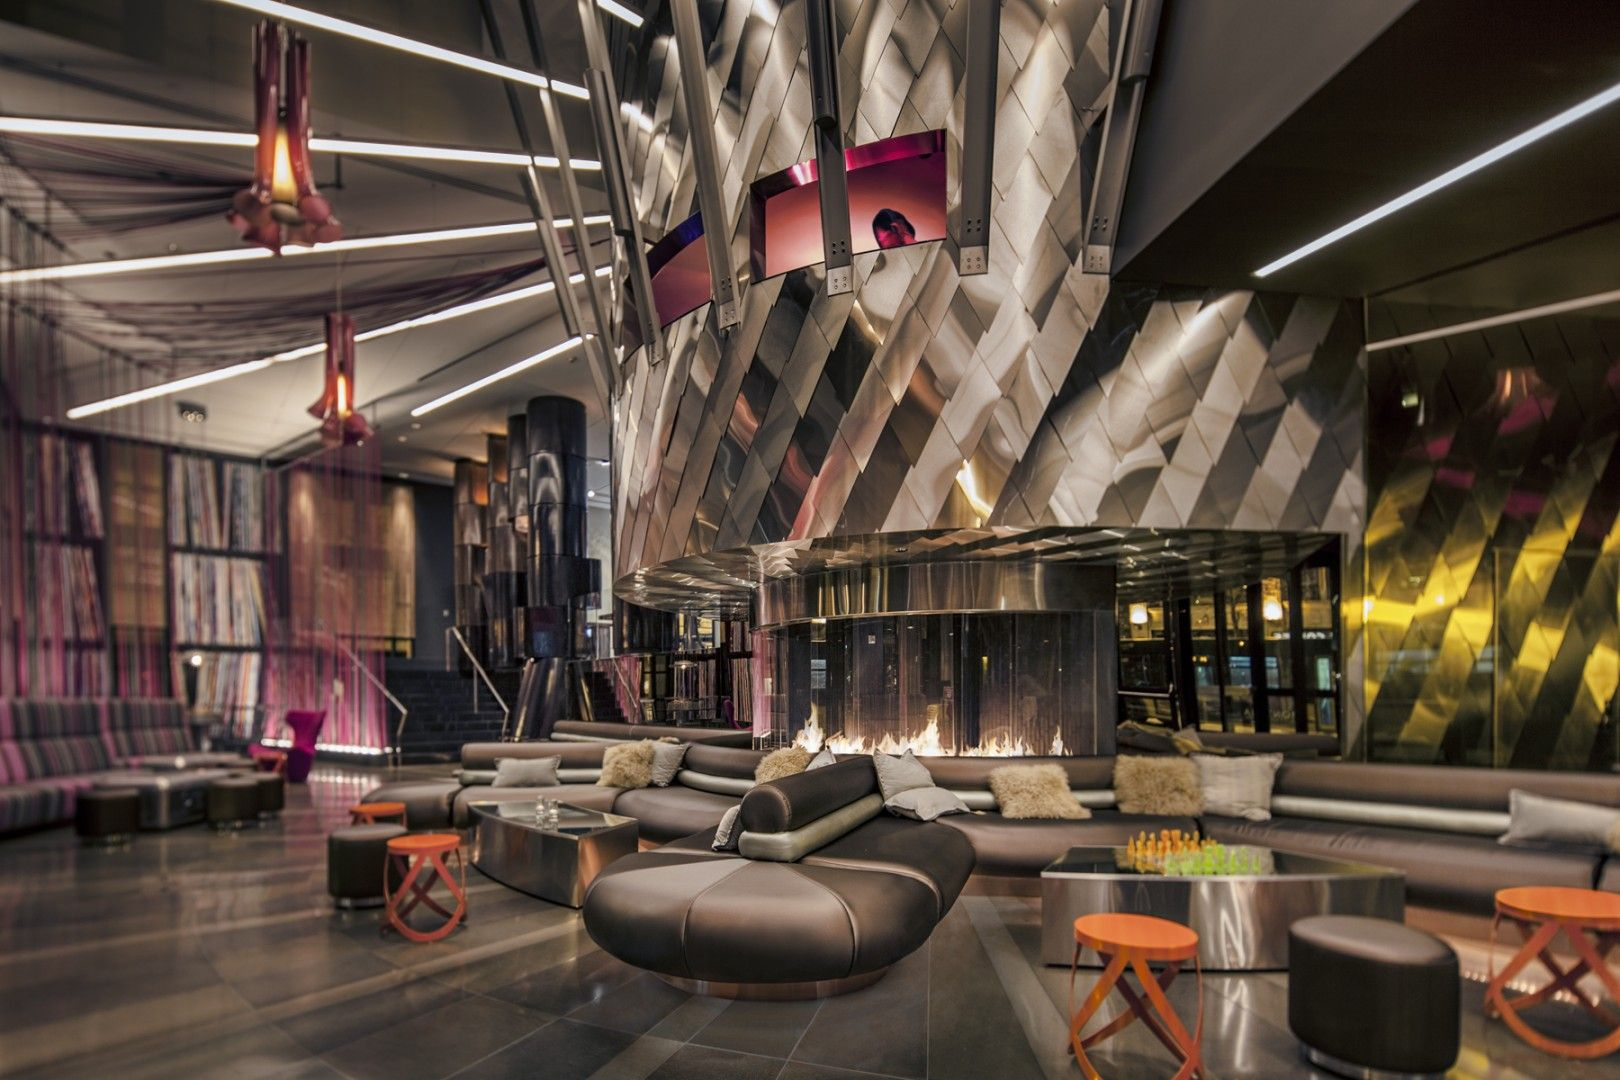 2013 Restaurant Bar Design Award WinnersAmericas The Living Room United States Skylab Architecture